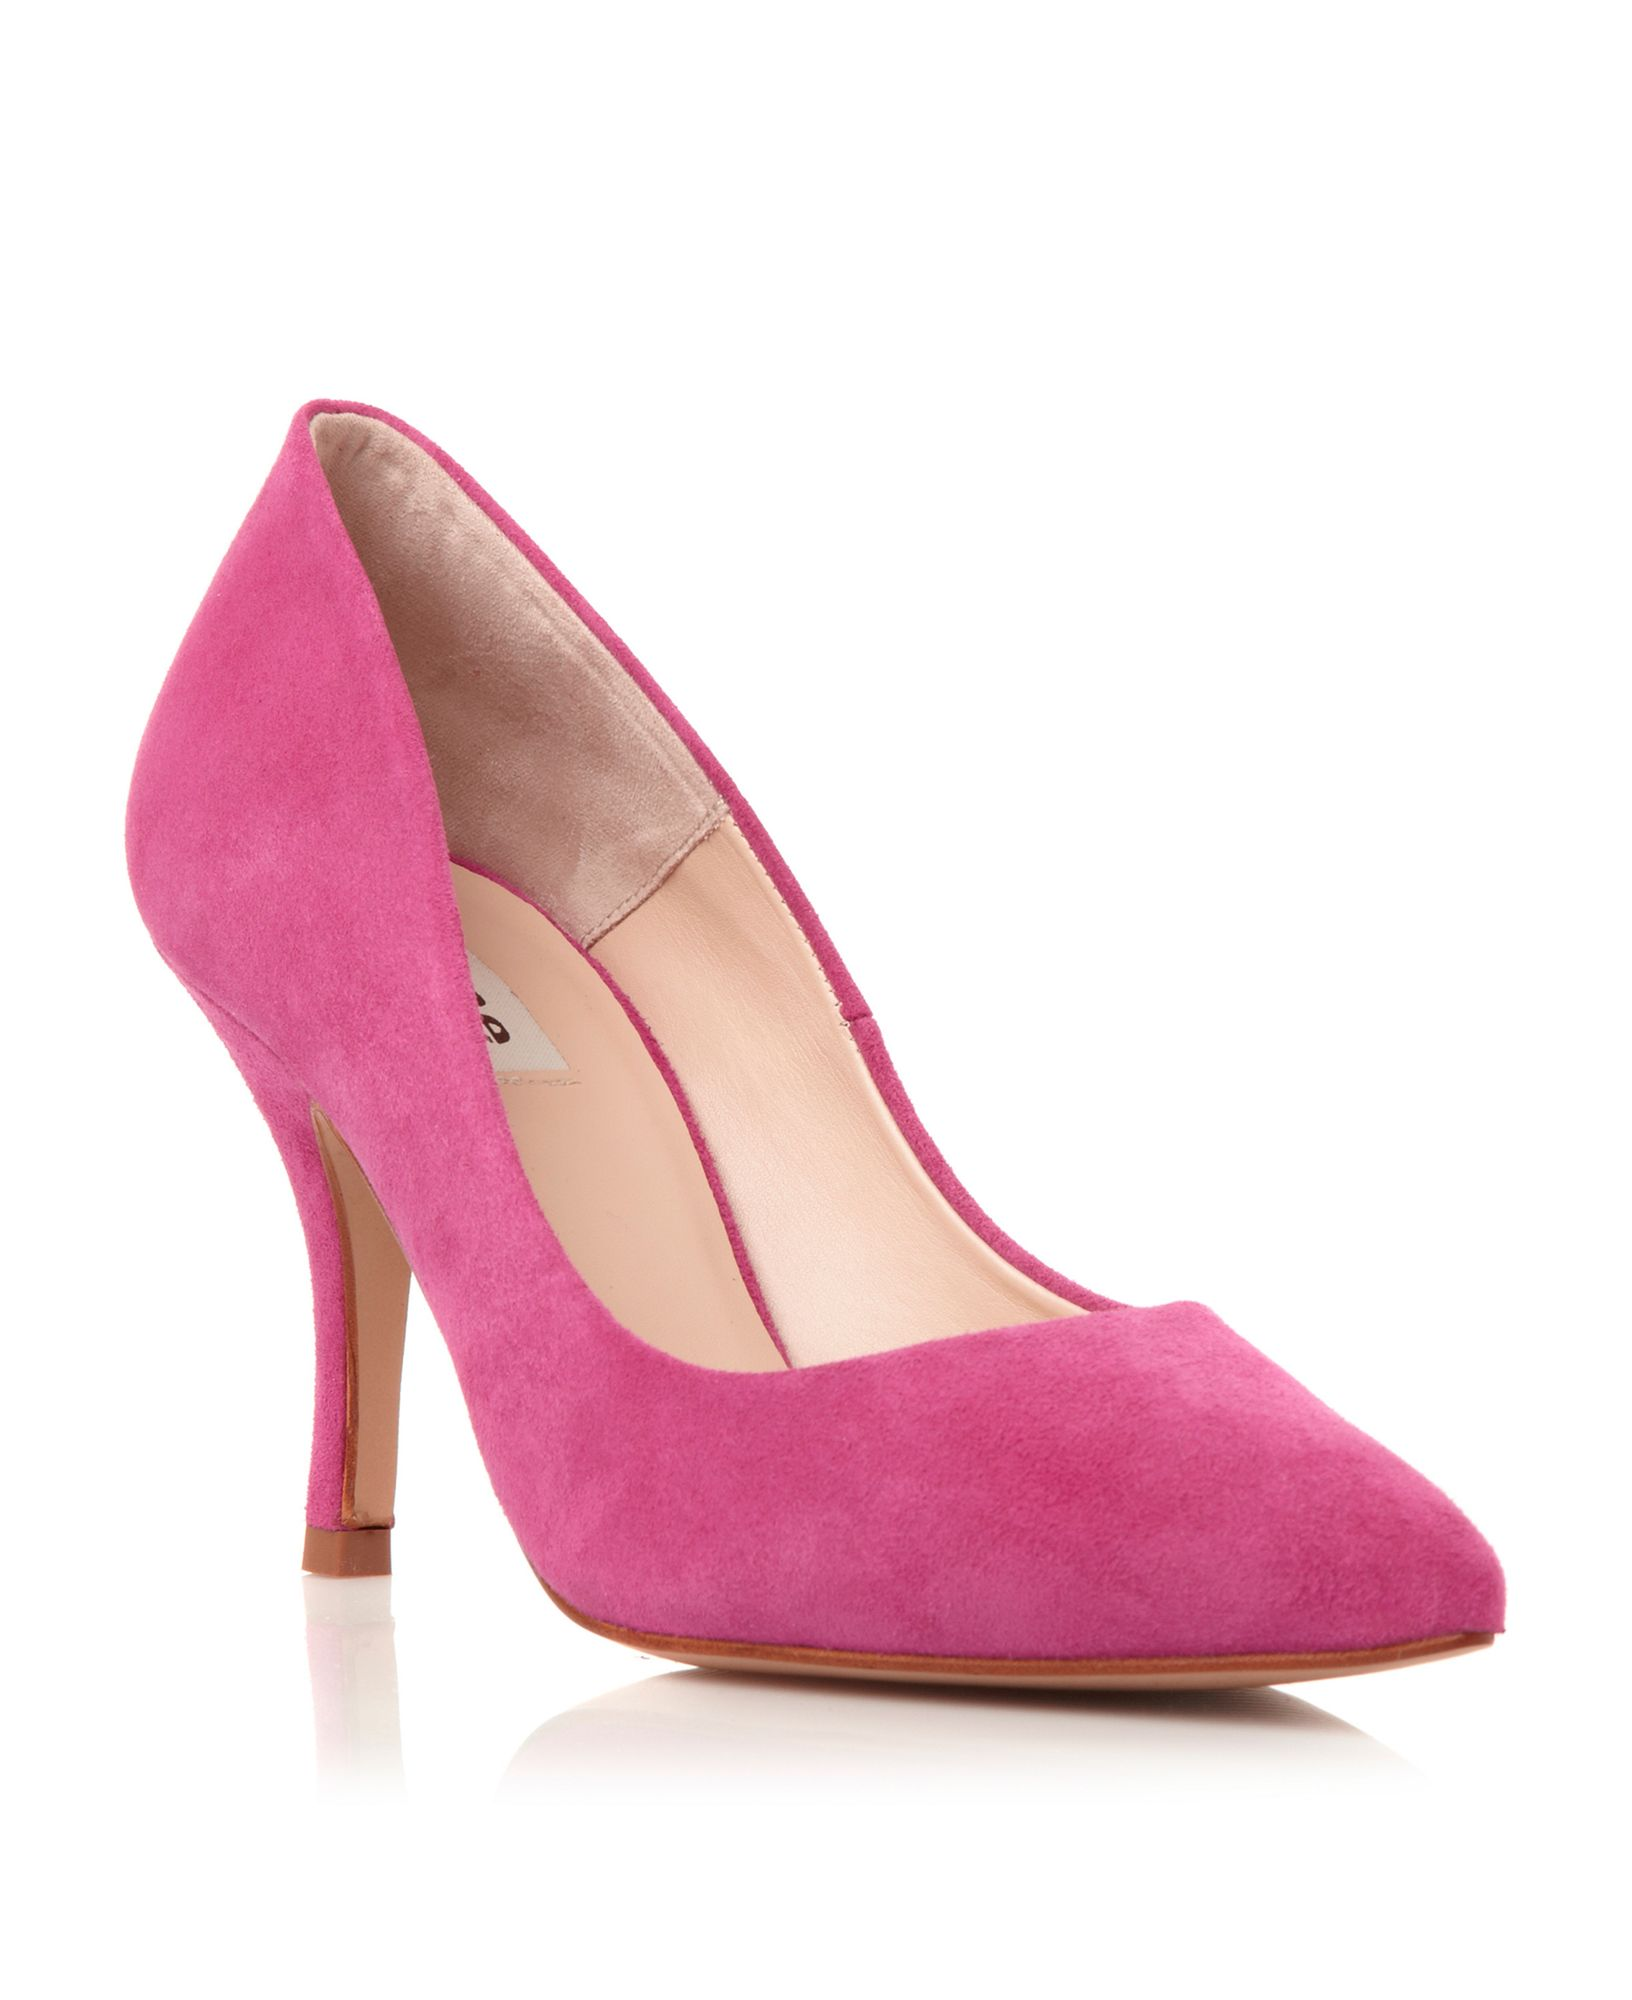 Pink Shoes Mid Heel - Is Heel